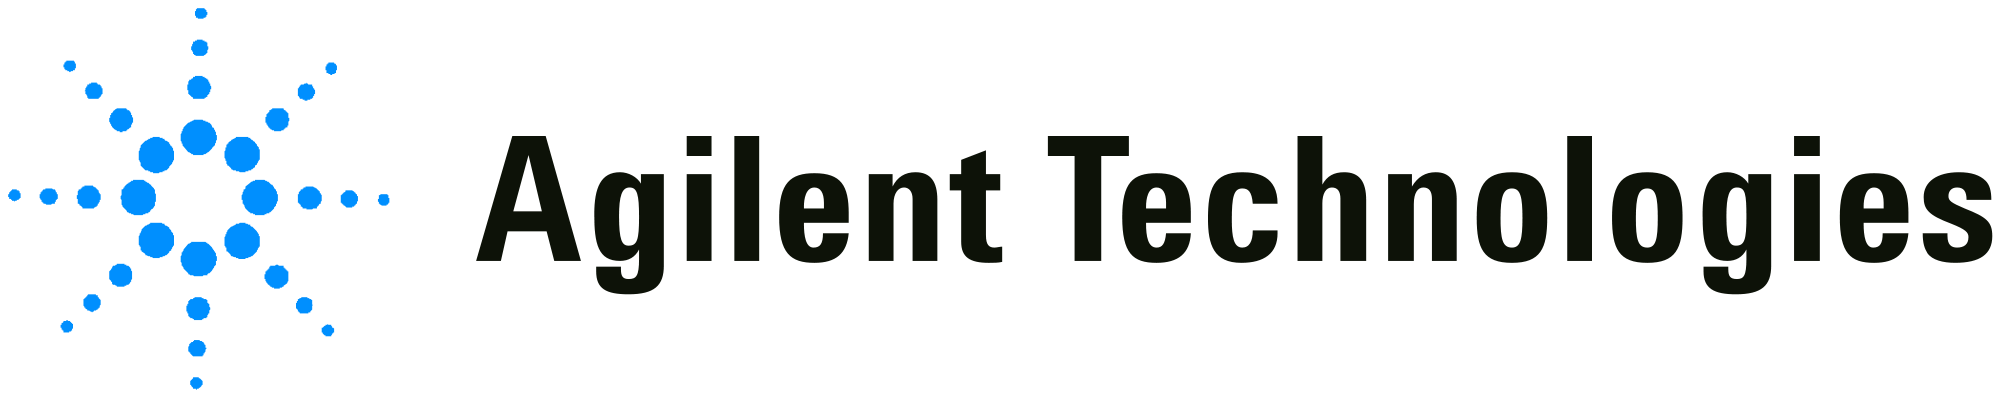 Client - Agilent Technologies Lab and Manufacturing Company